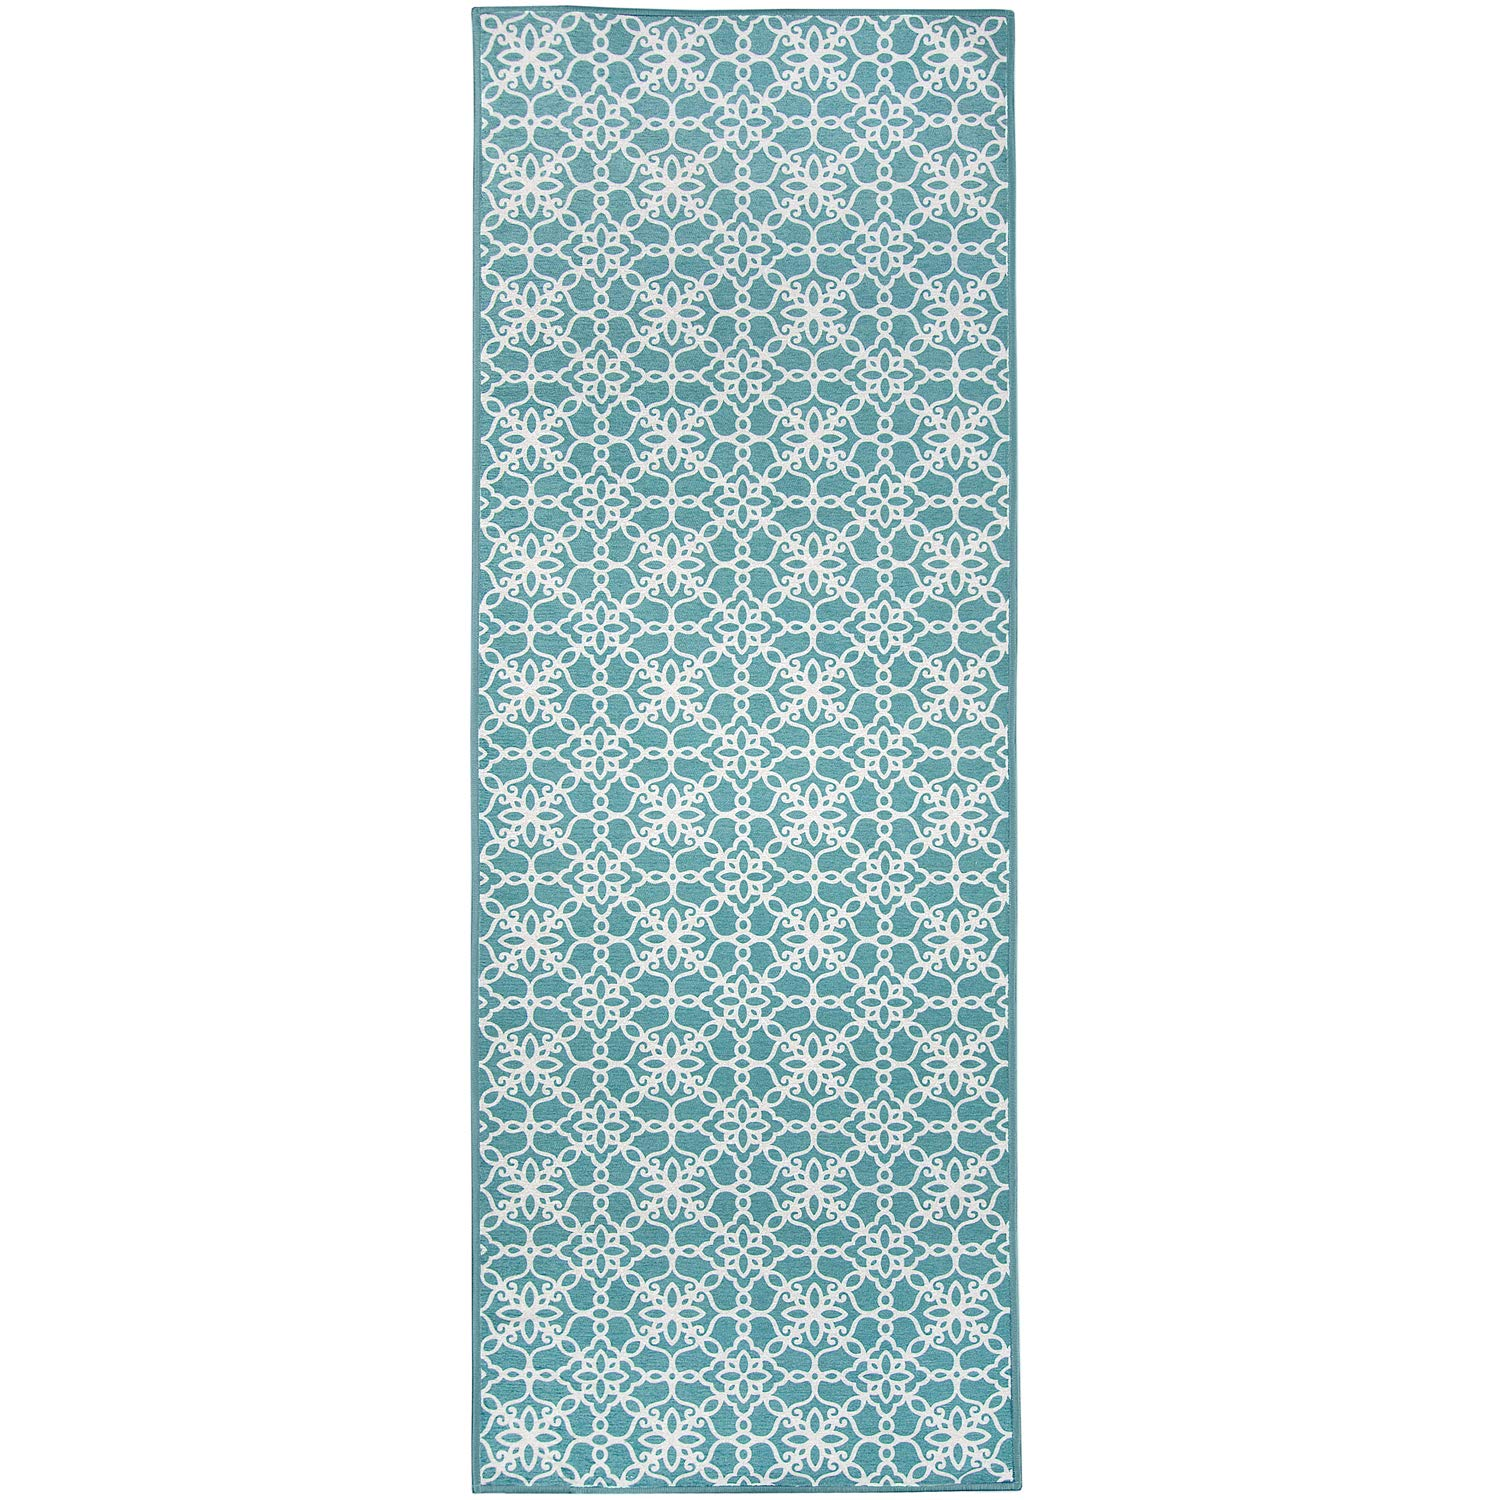 RUGGABLE Washable Stain Resistant Pet Dog Runner Rug for Indoor/Outdoor - Floral Tiles Aqua Blue 2.5' x 7' Runner Rug Set